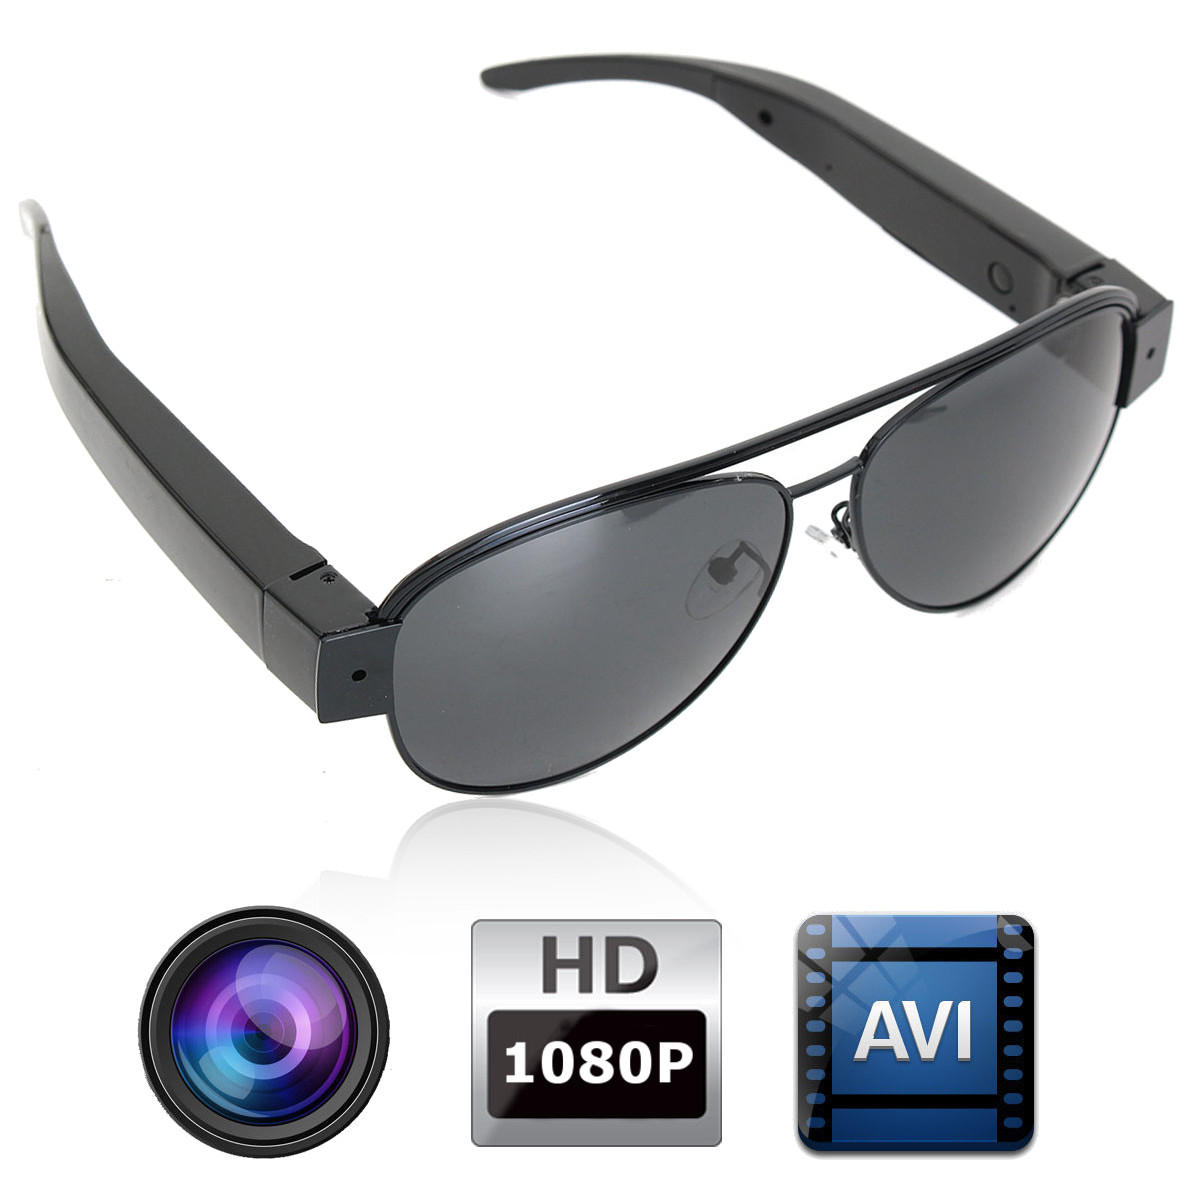 cf86738fec 1080p mini hidden dv dvr video camera camcorder eyewear glasses sunglasses  Sale - Banggood.com sold out